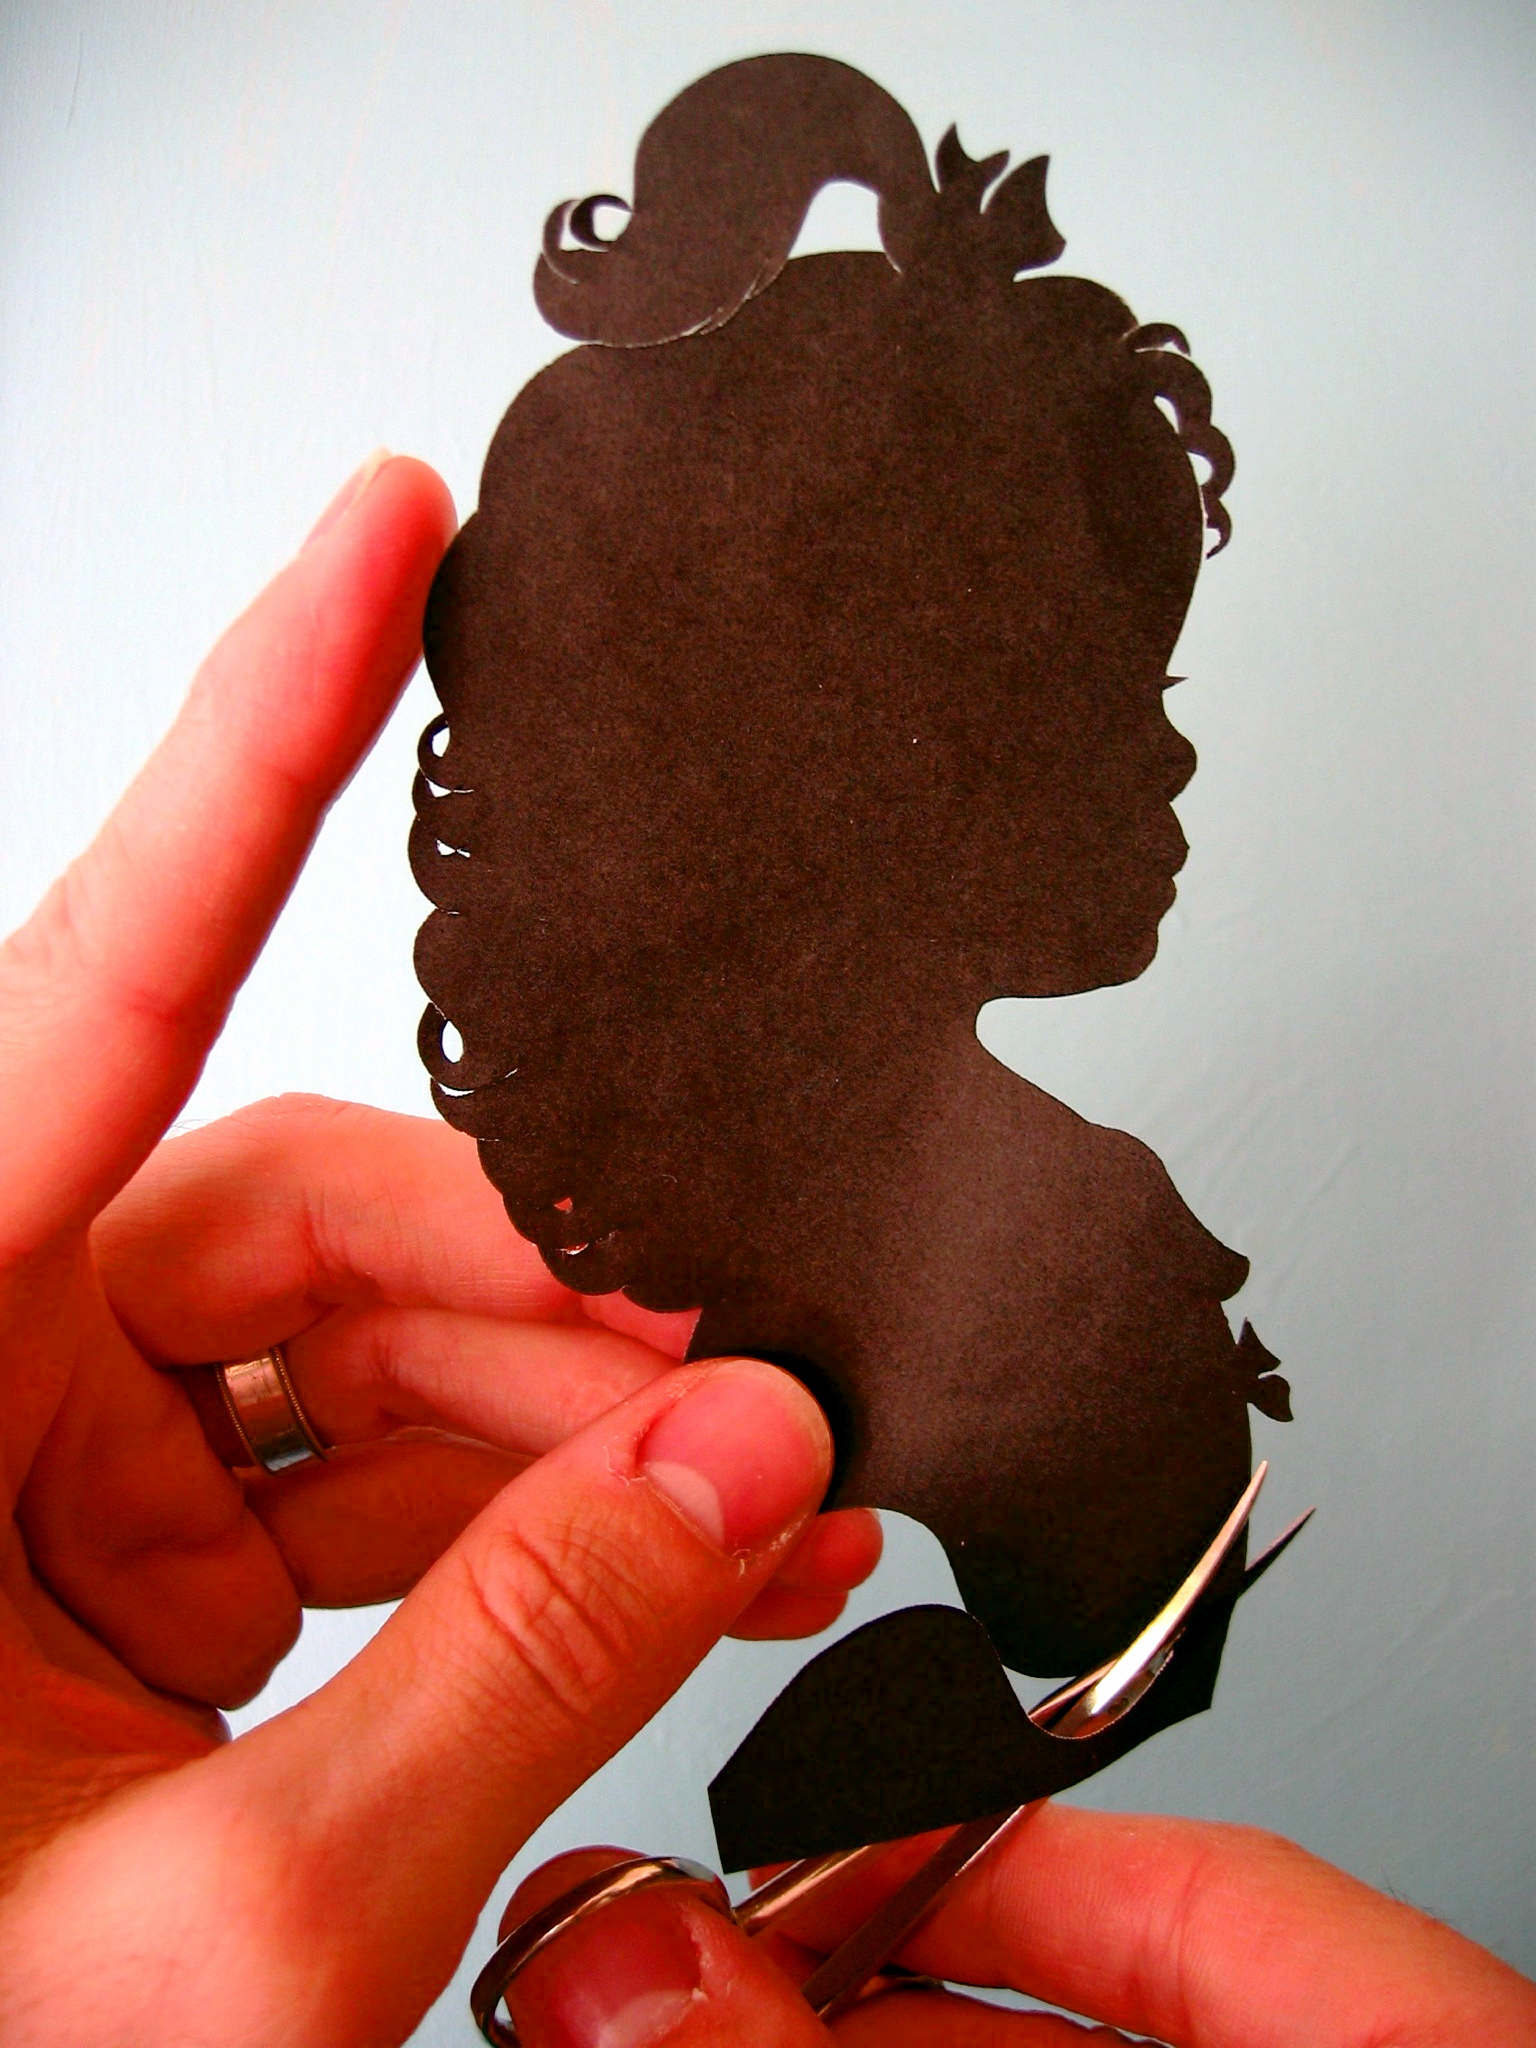 The traditional method of making a silhouette portrait.